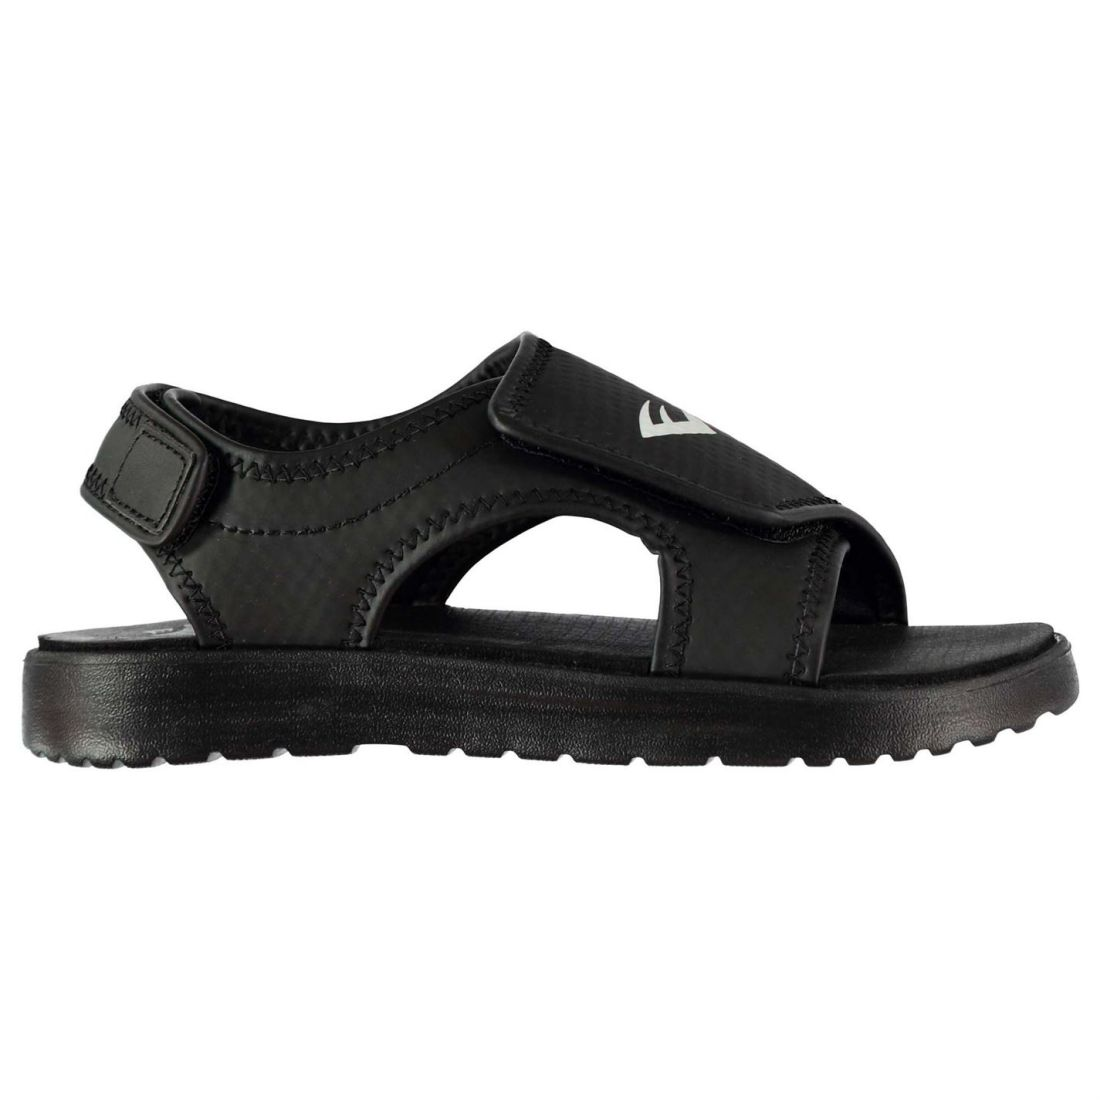 bf763bce63bb Image is loading Everlast-Sensei-Childrens-Pool-Shoes-Athletic-Sandals -Strap-